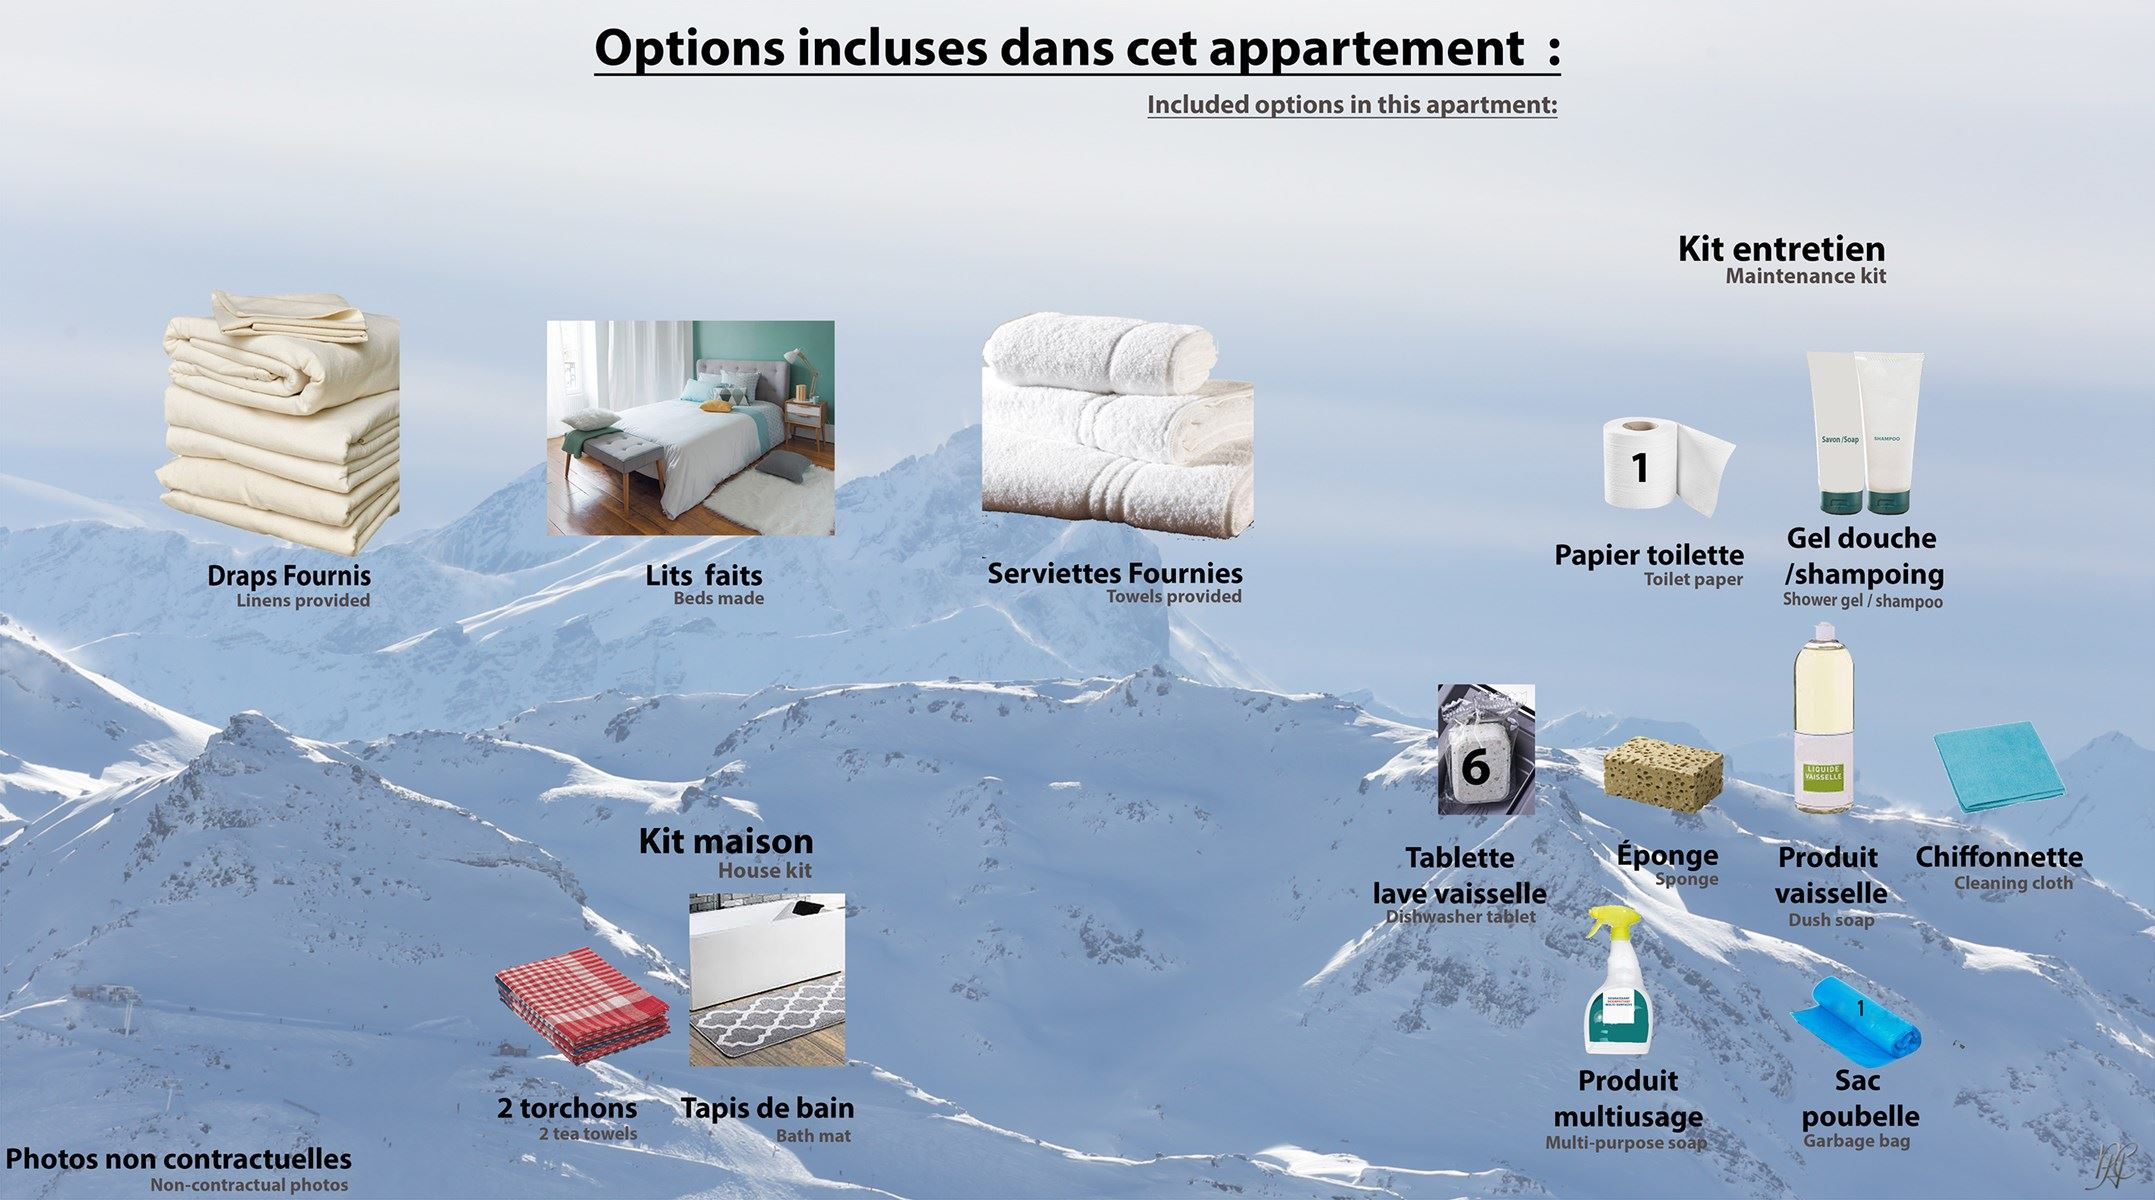 SILVERALP 217 / APPARTEMENT 4 PIECES 6 PERSONNES - 4 FLOCONS OR - ADA